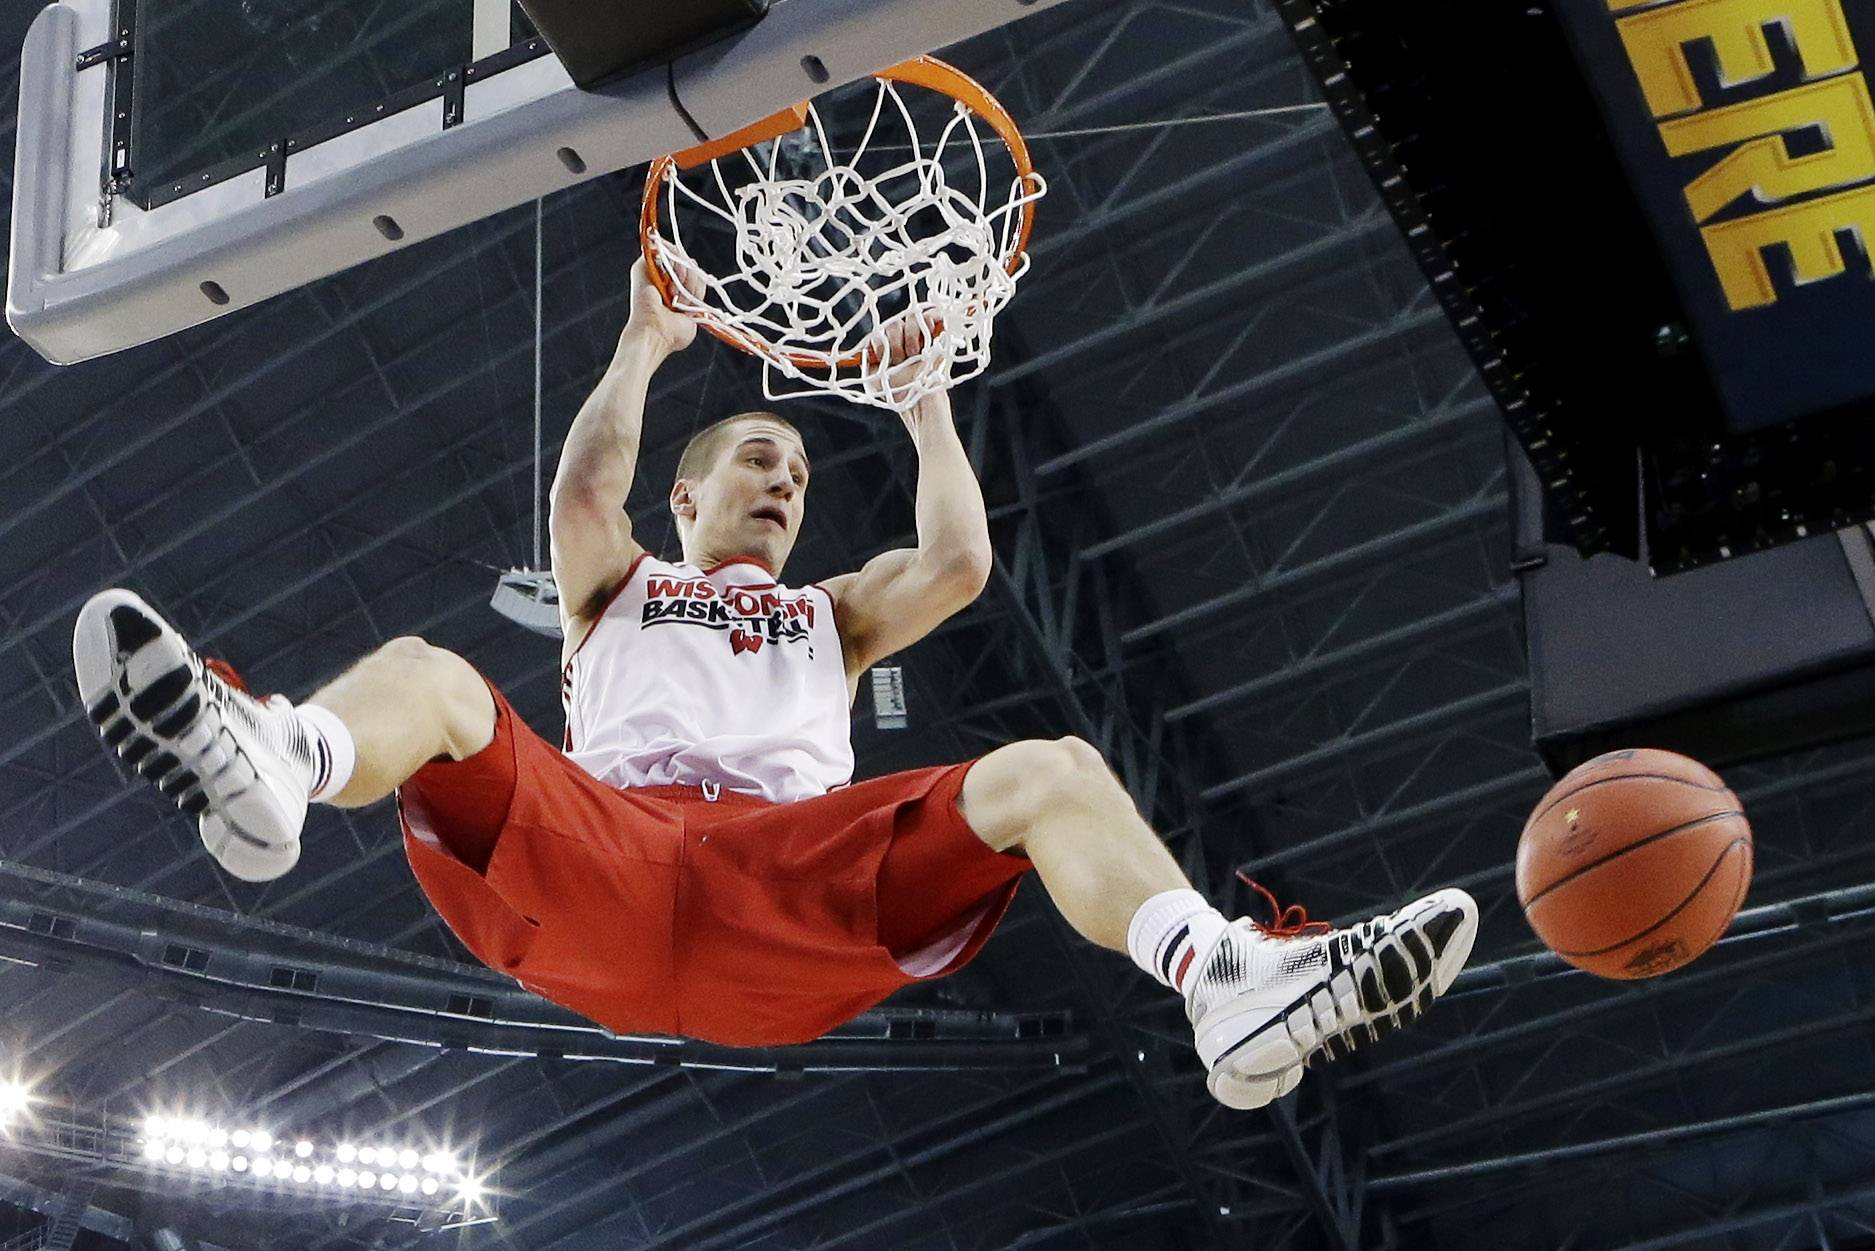 Wisconsin guard Ben Brust dunks during practice Friday in Dallas.